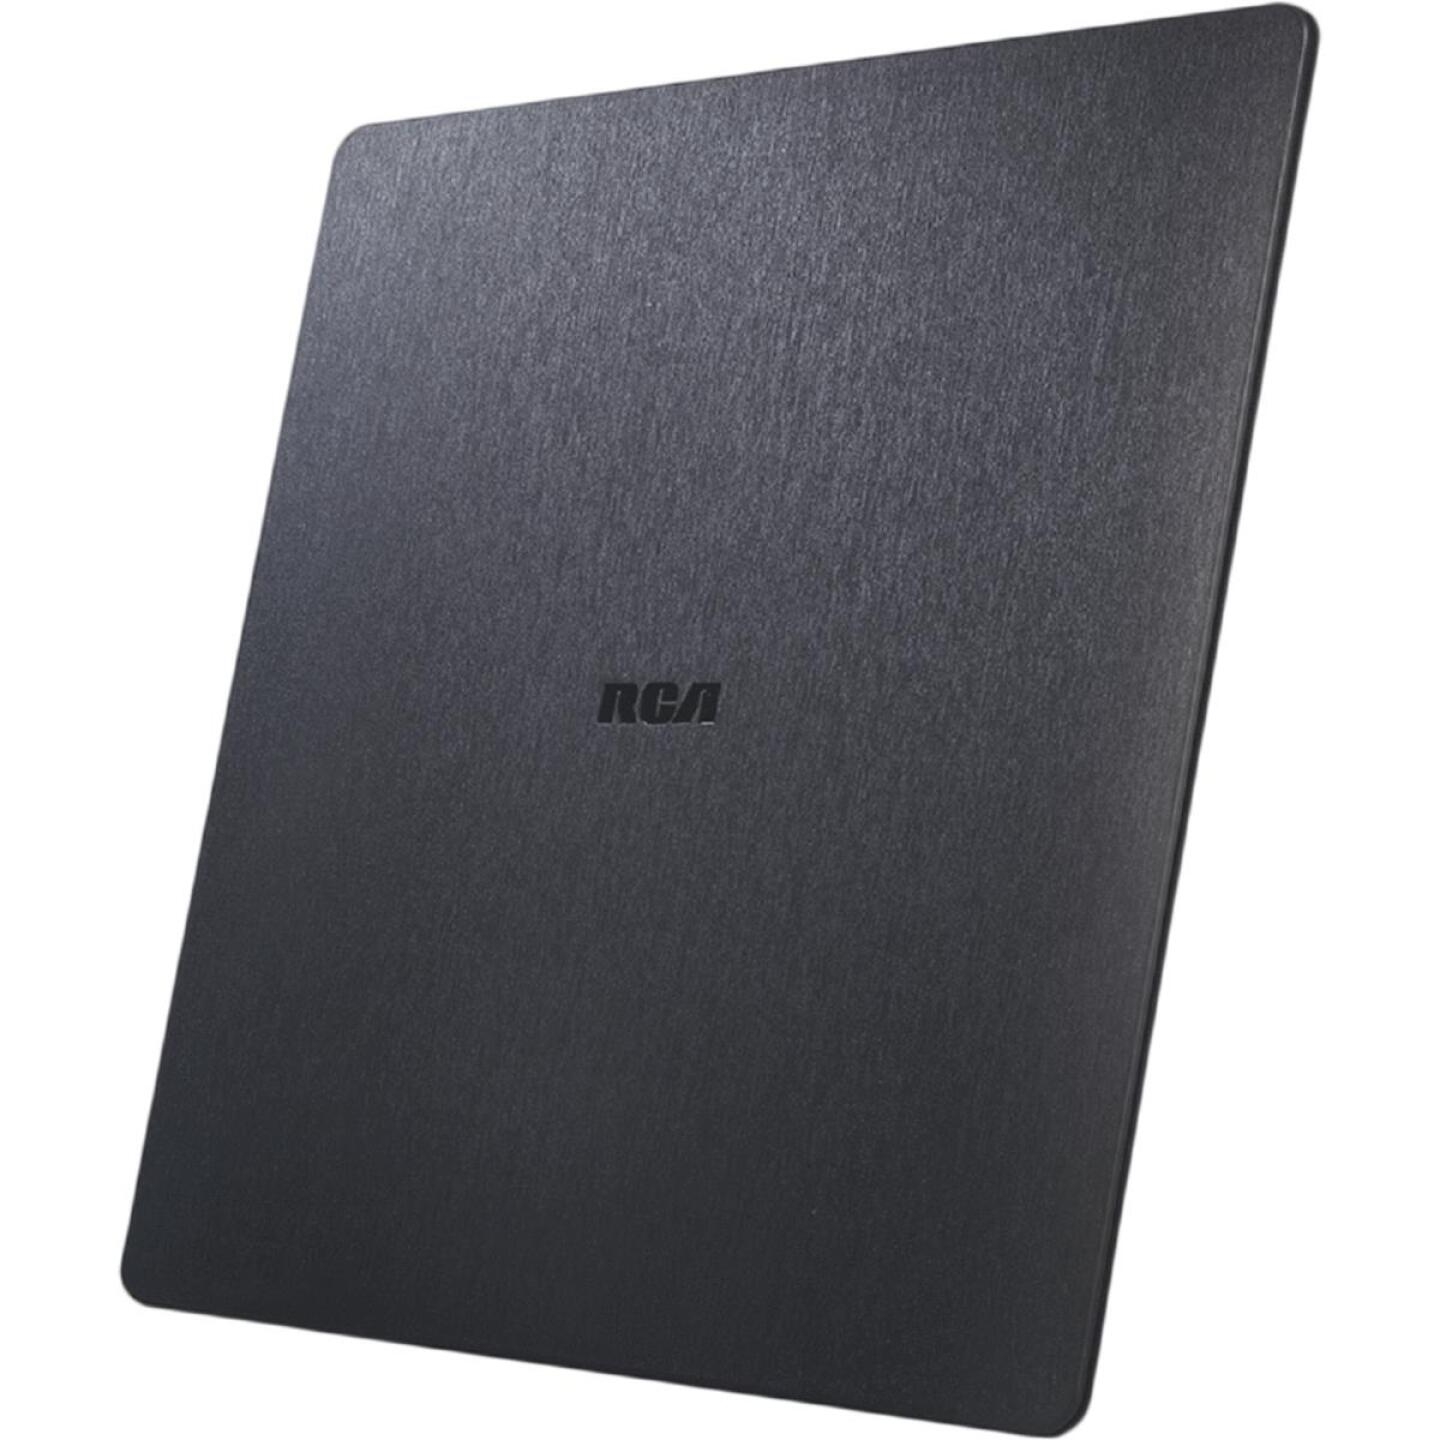 RCA Gold Series Black 8.53 In. Amplified Flat Indoor Antenna Image 2